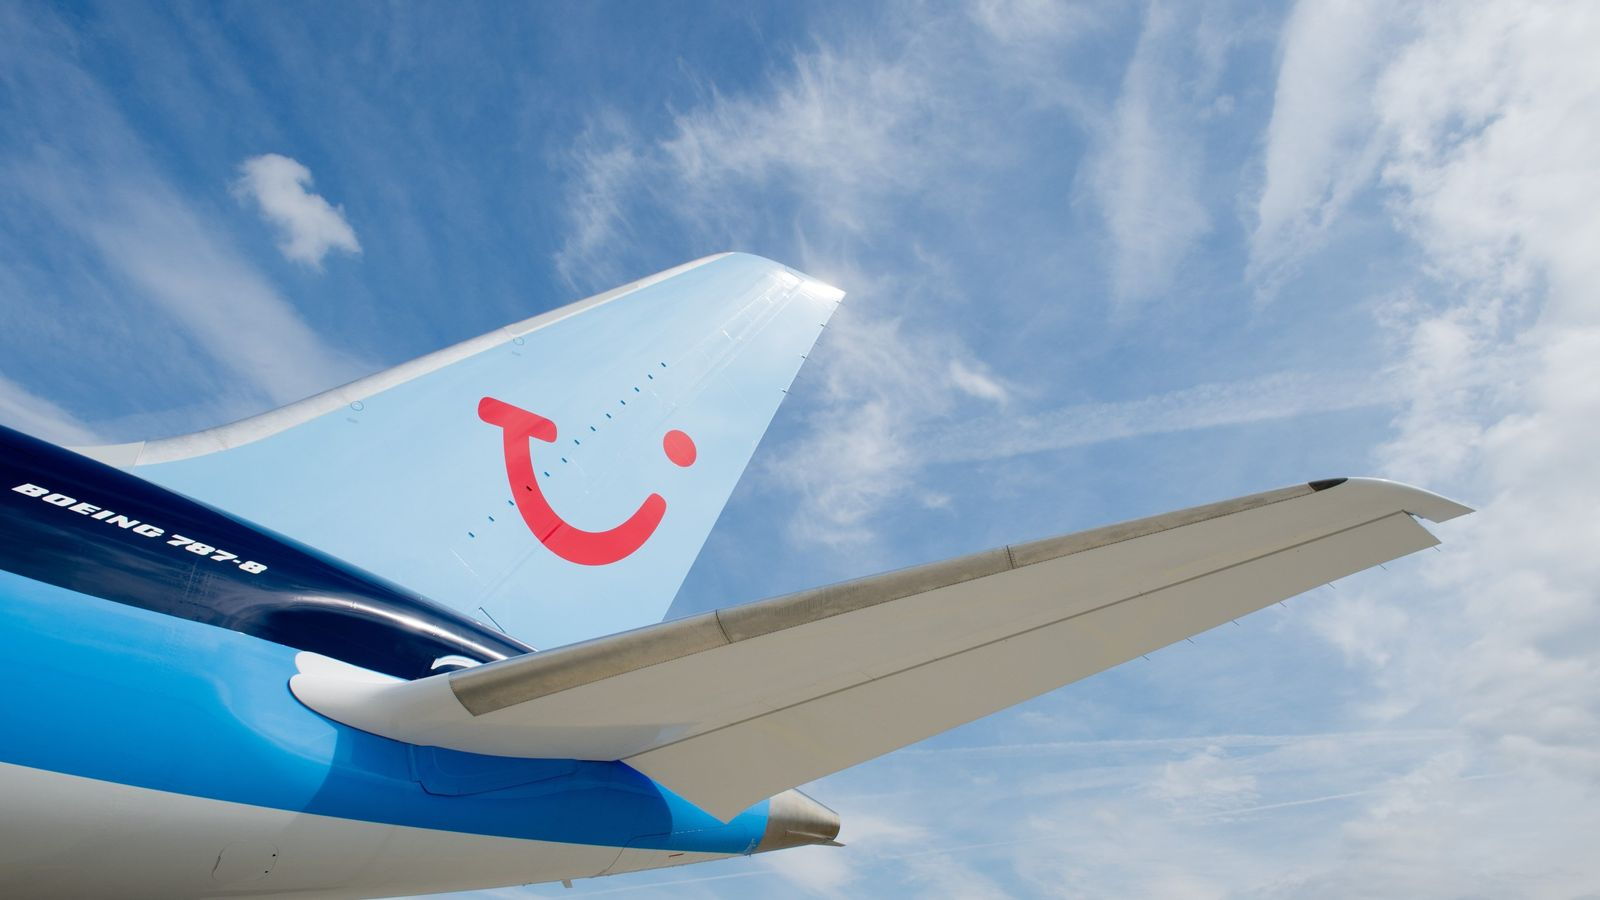 TUI sees stronger holiday demand offsetting Boeing 737 MAX woes